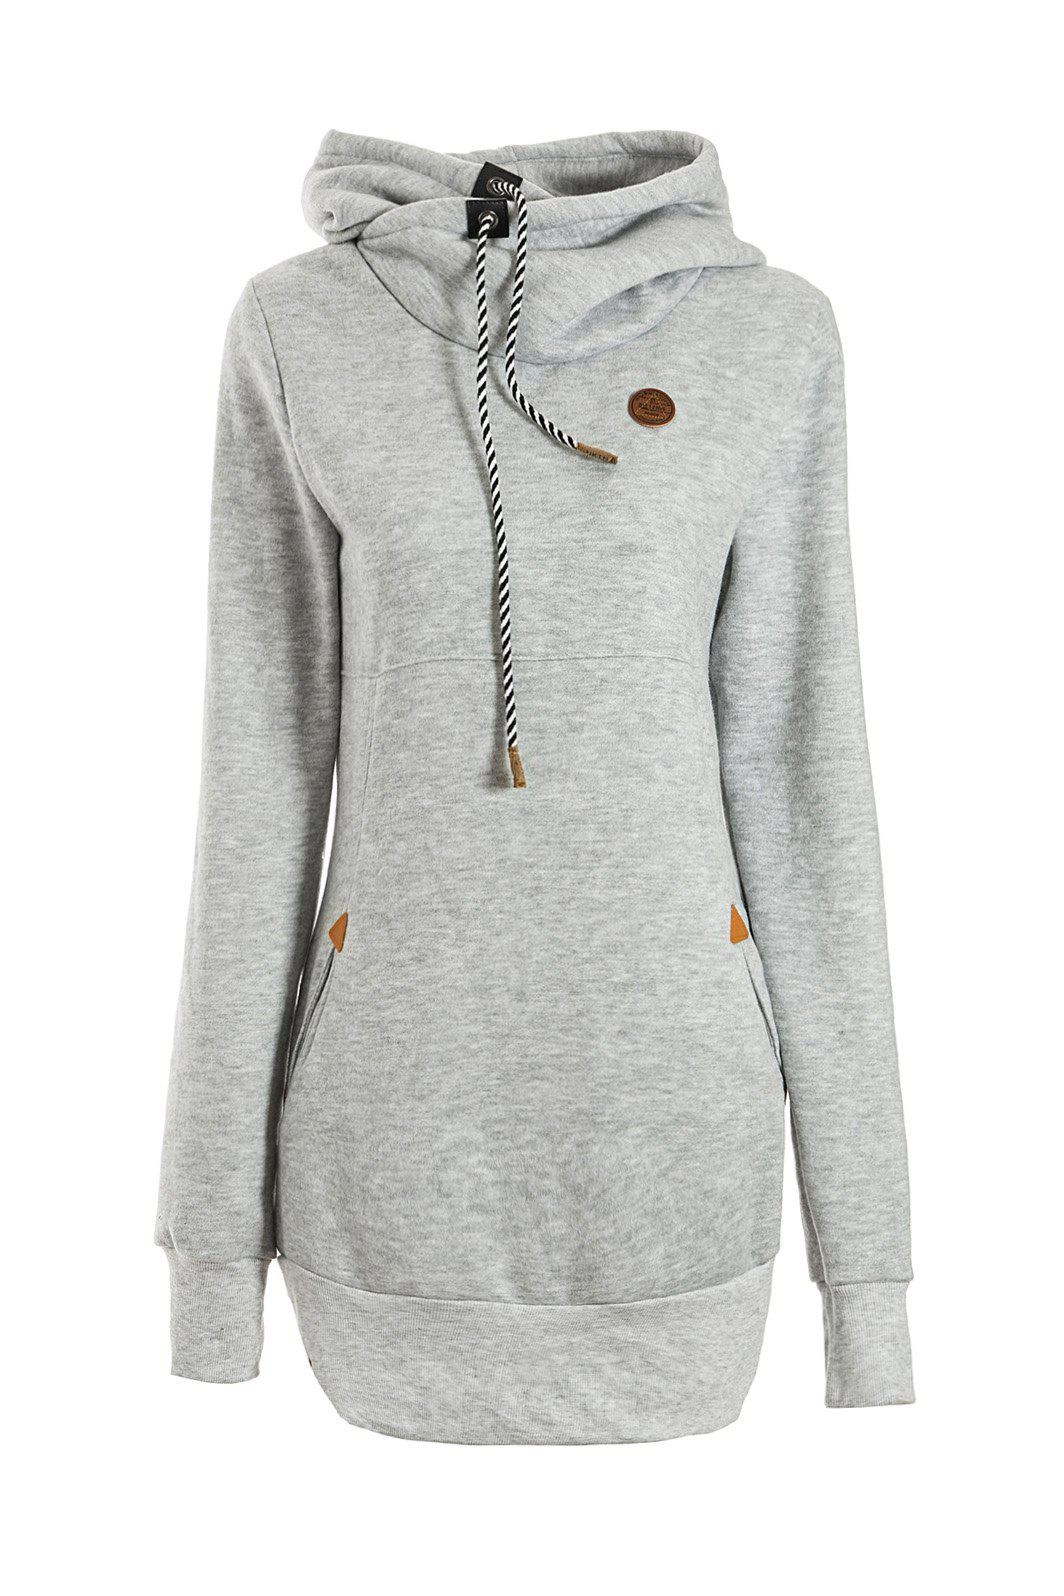 Women's Chic Solid Color Long Sleeve Hooded Hoodie hooded solid color long sleeve hoodie for men